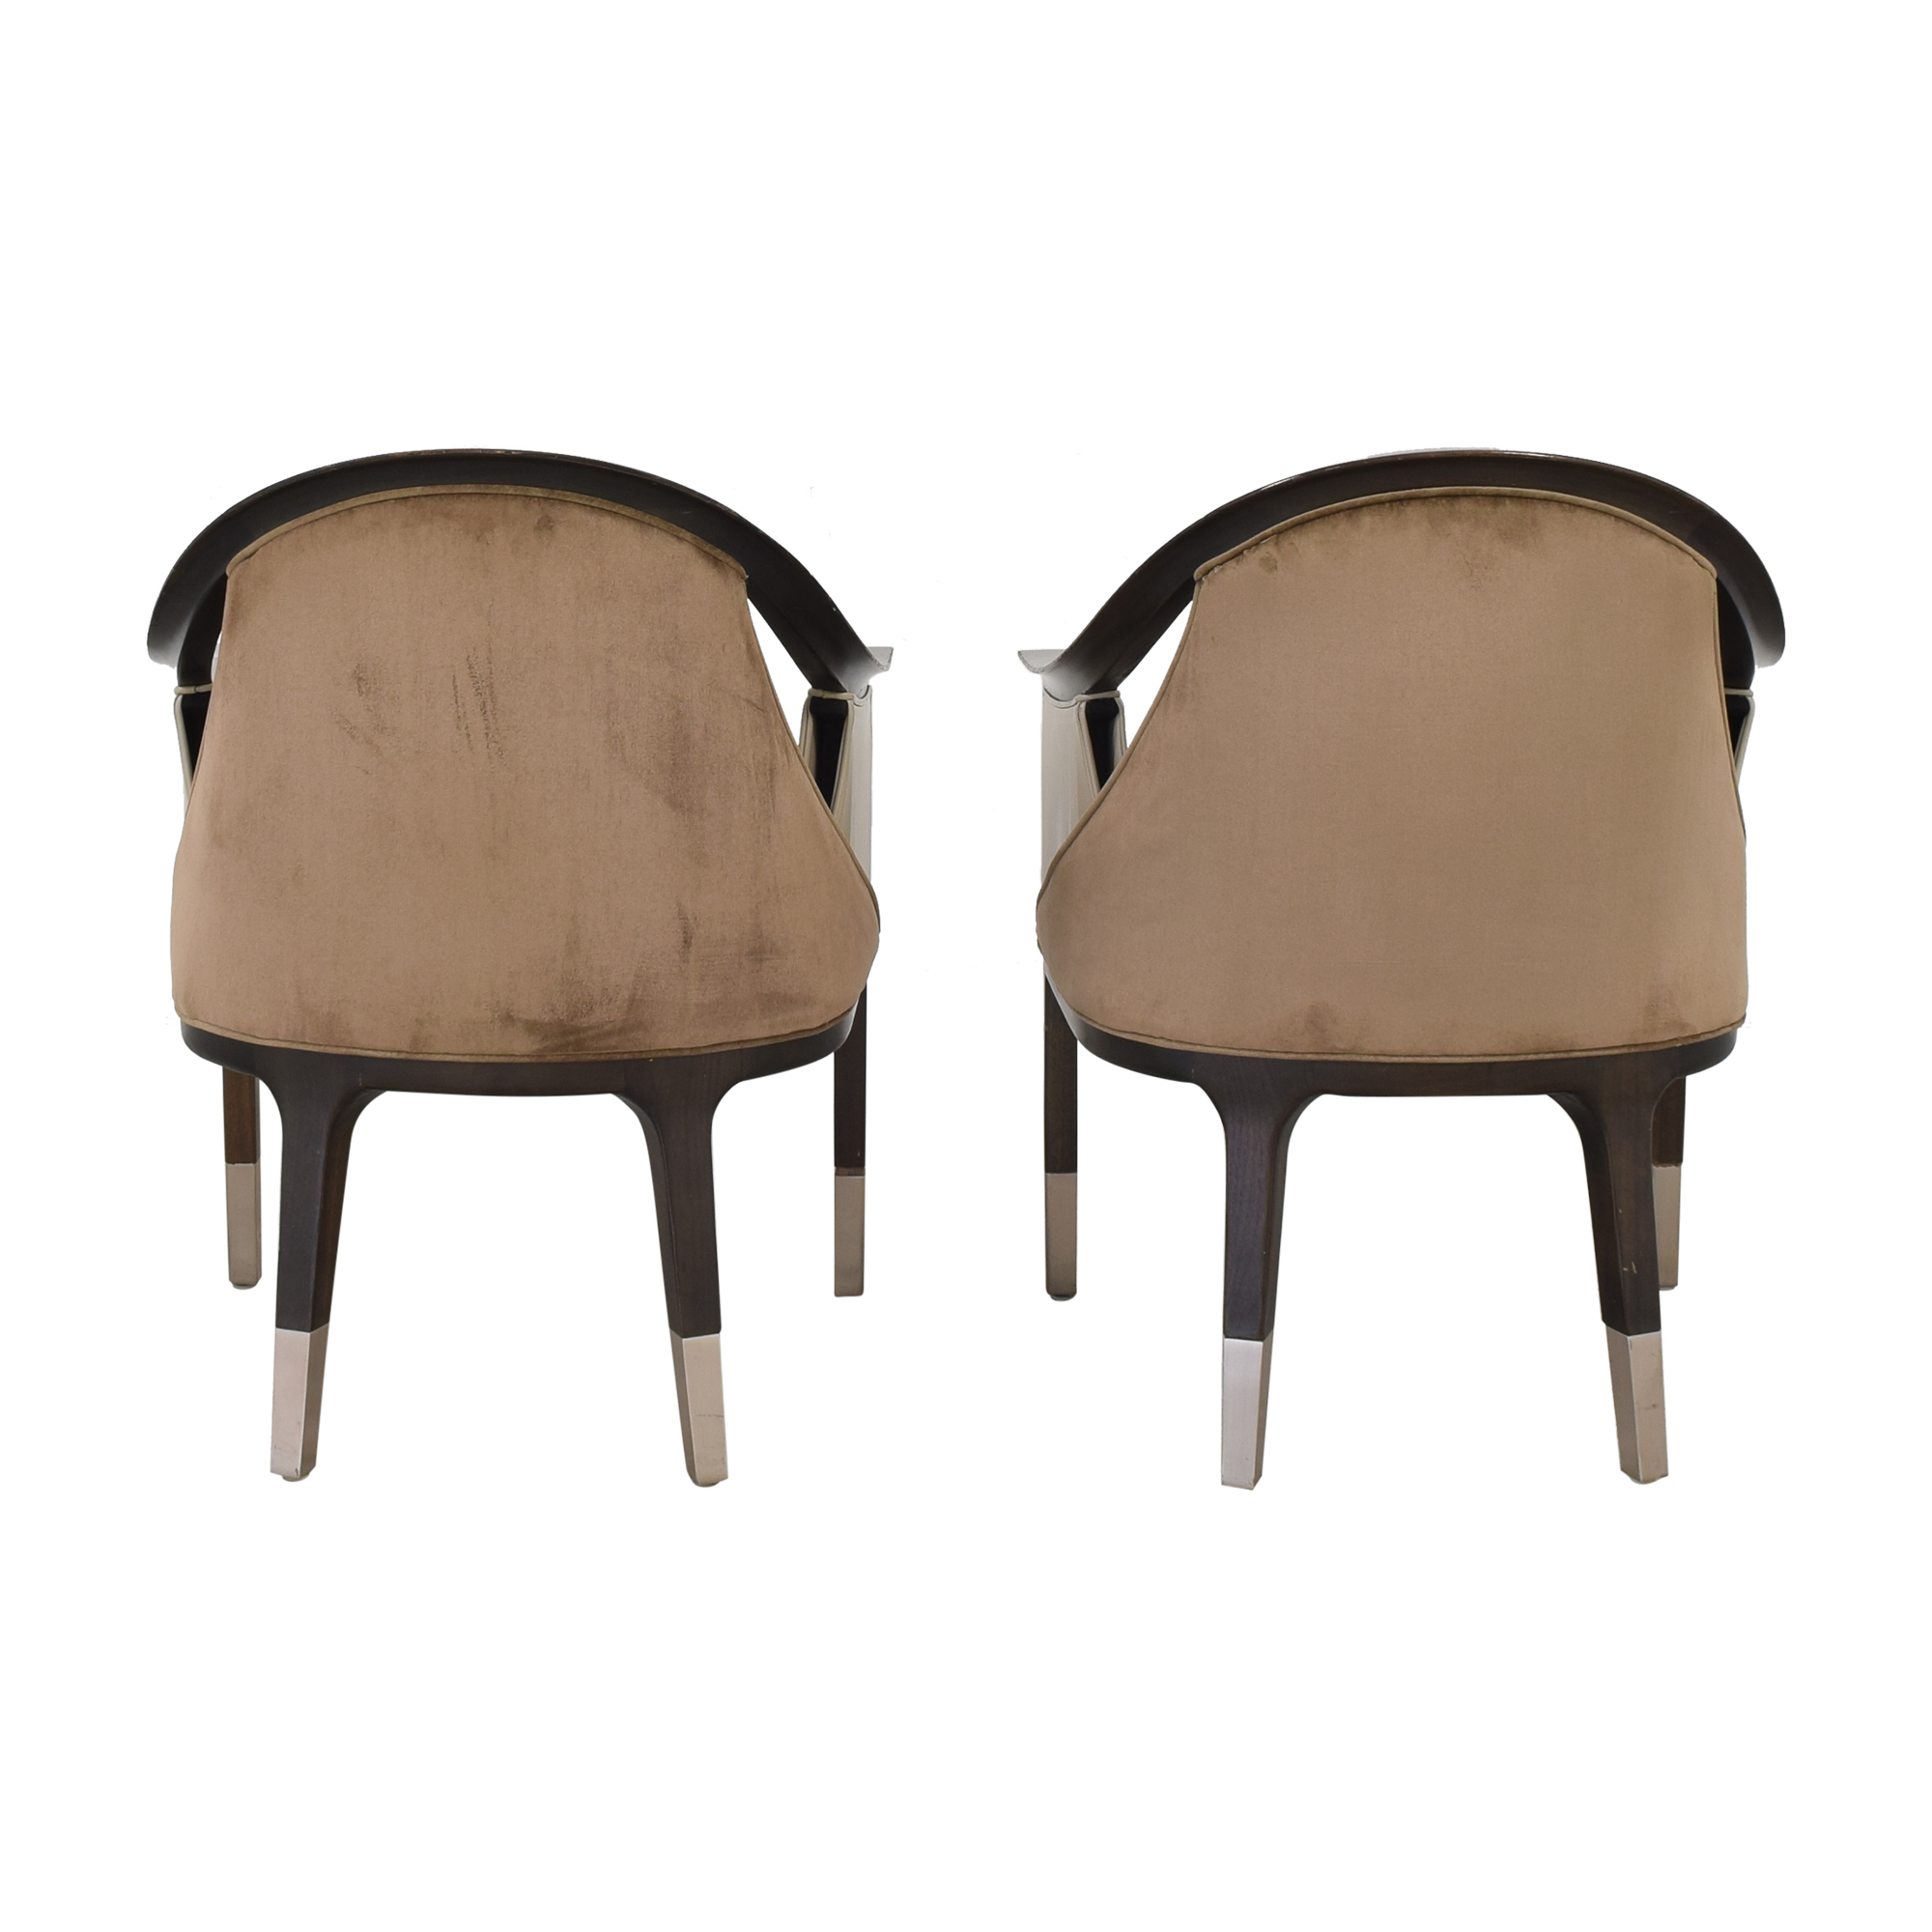 Allied Form Works Allied Works Eleven Madison Park Dining Room Chairs beige and dark brown